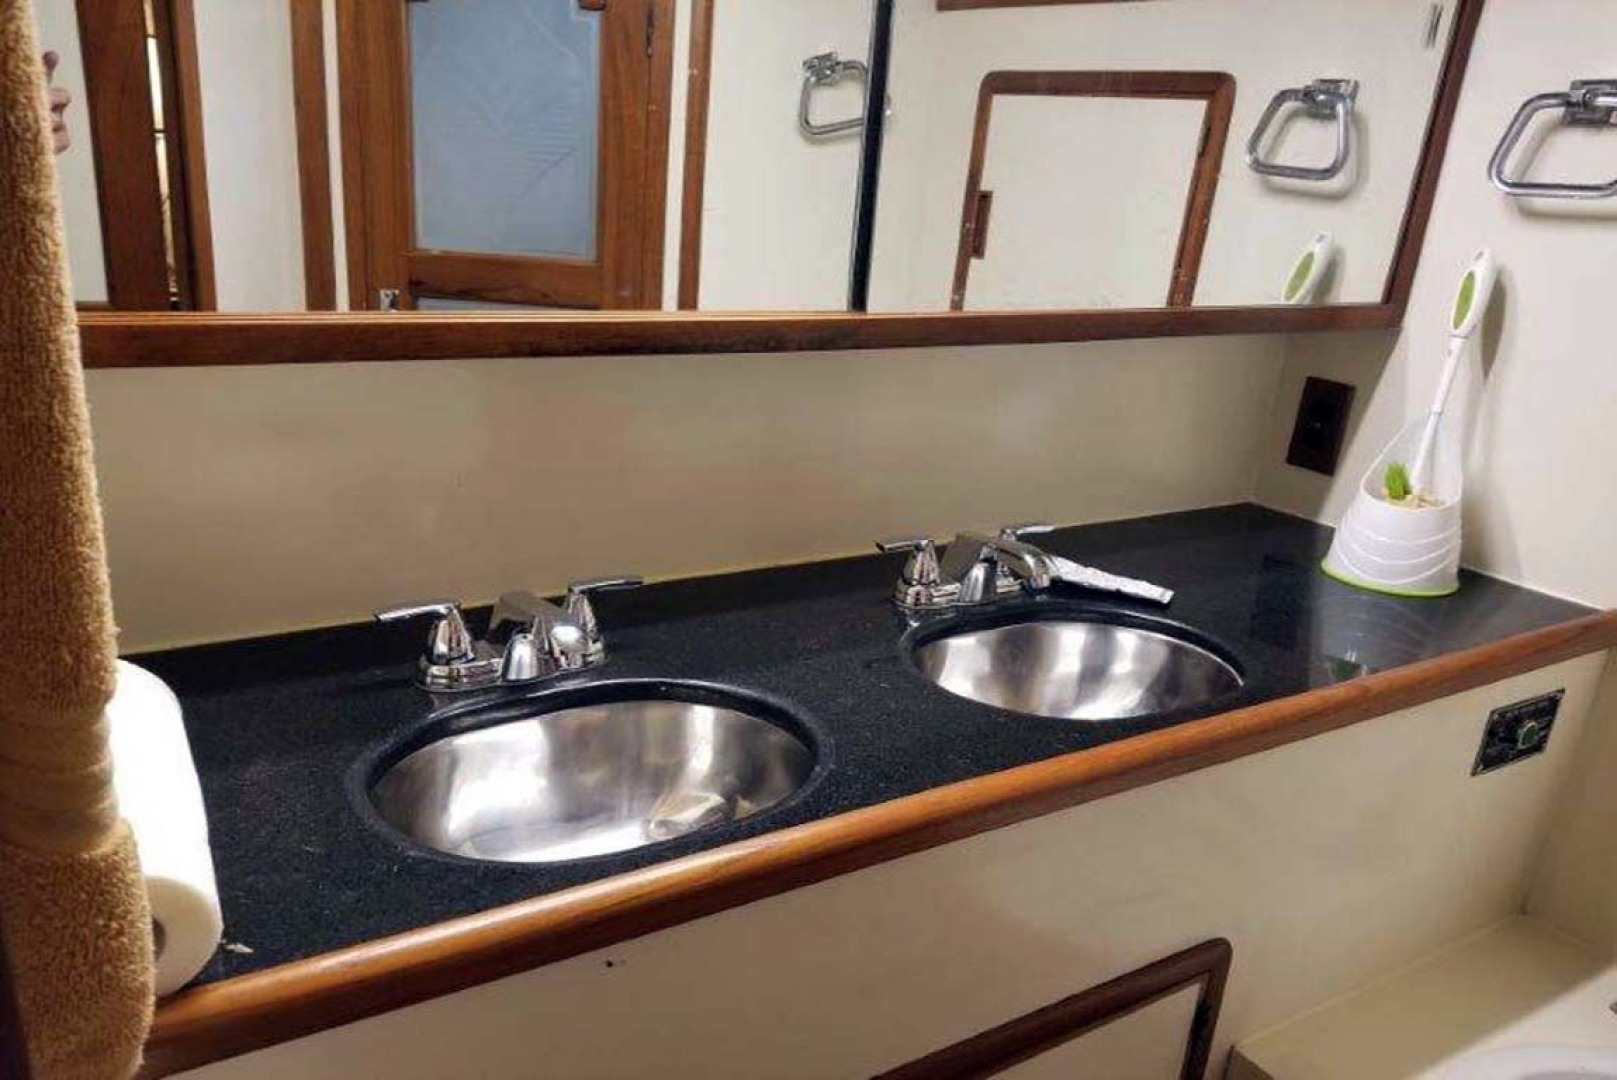 Mikelson-M57 1987-Miss Lori I Mission-British Columbia-Canada-Master His and Hers Sinks-1082849 | Thumbnail